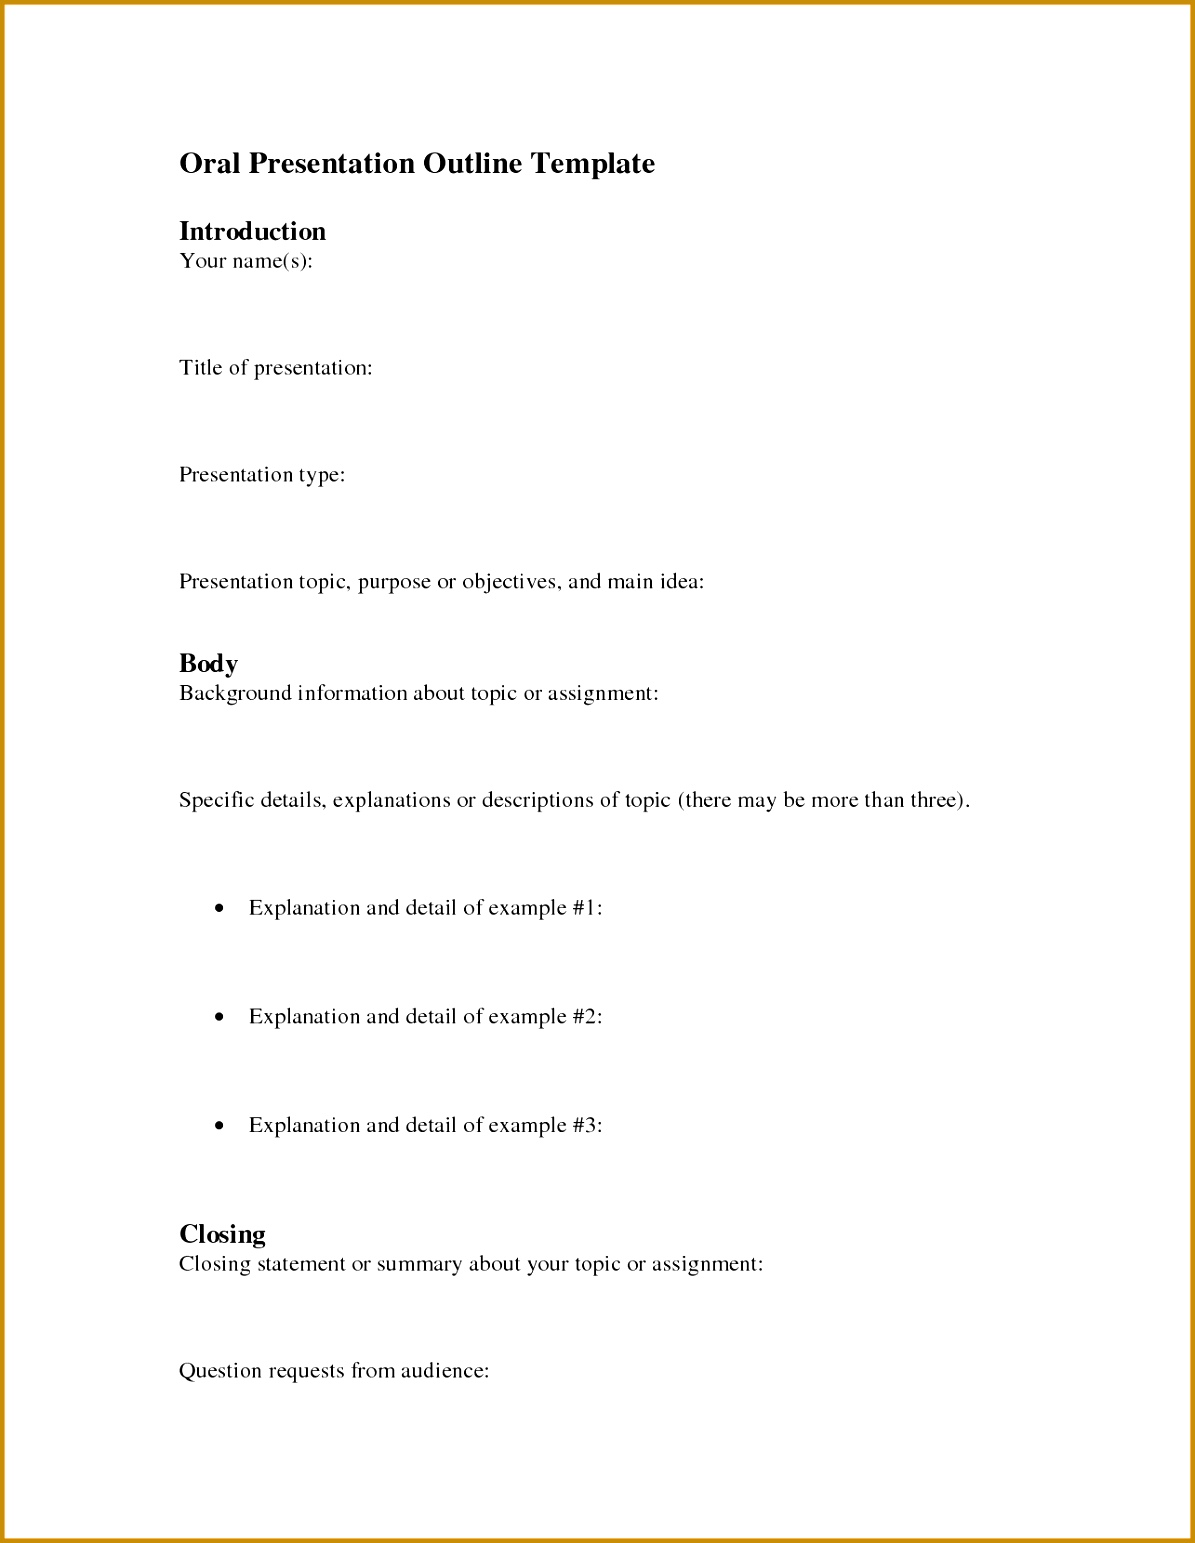 5 Presentation Outline Example | FabTemplatez